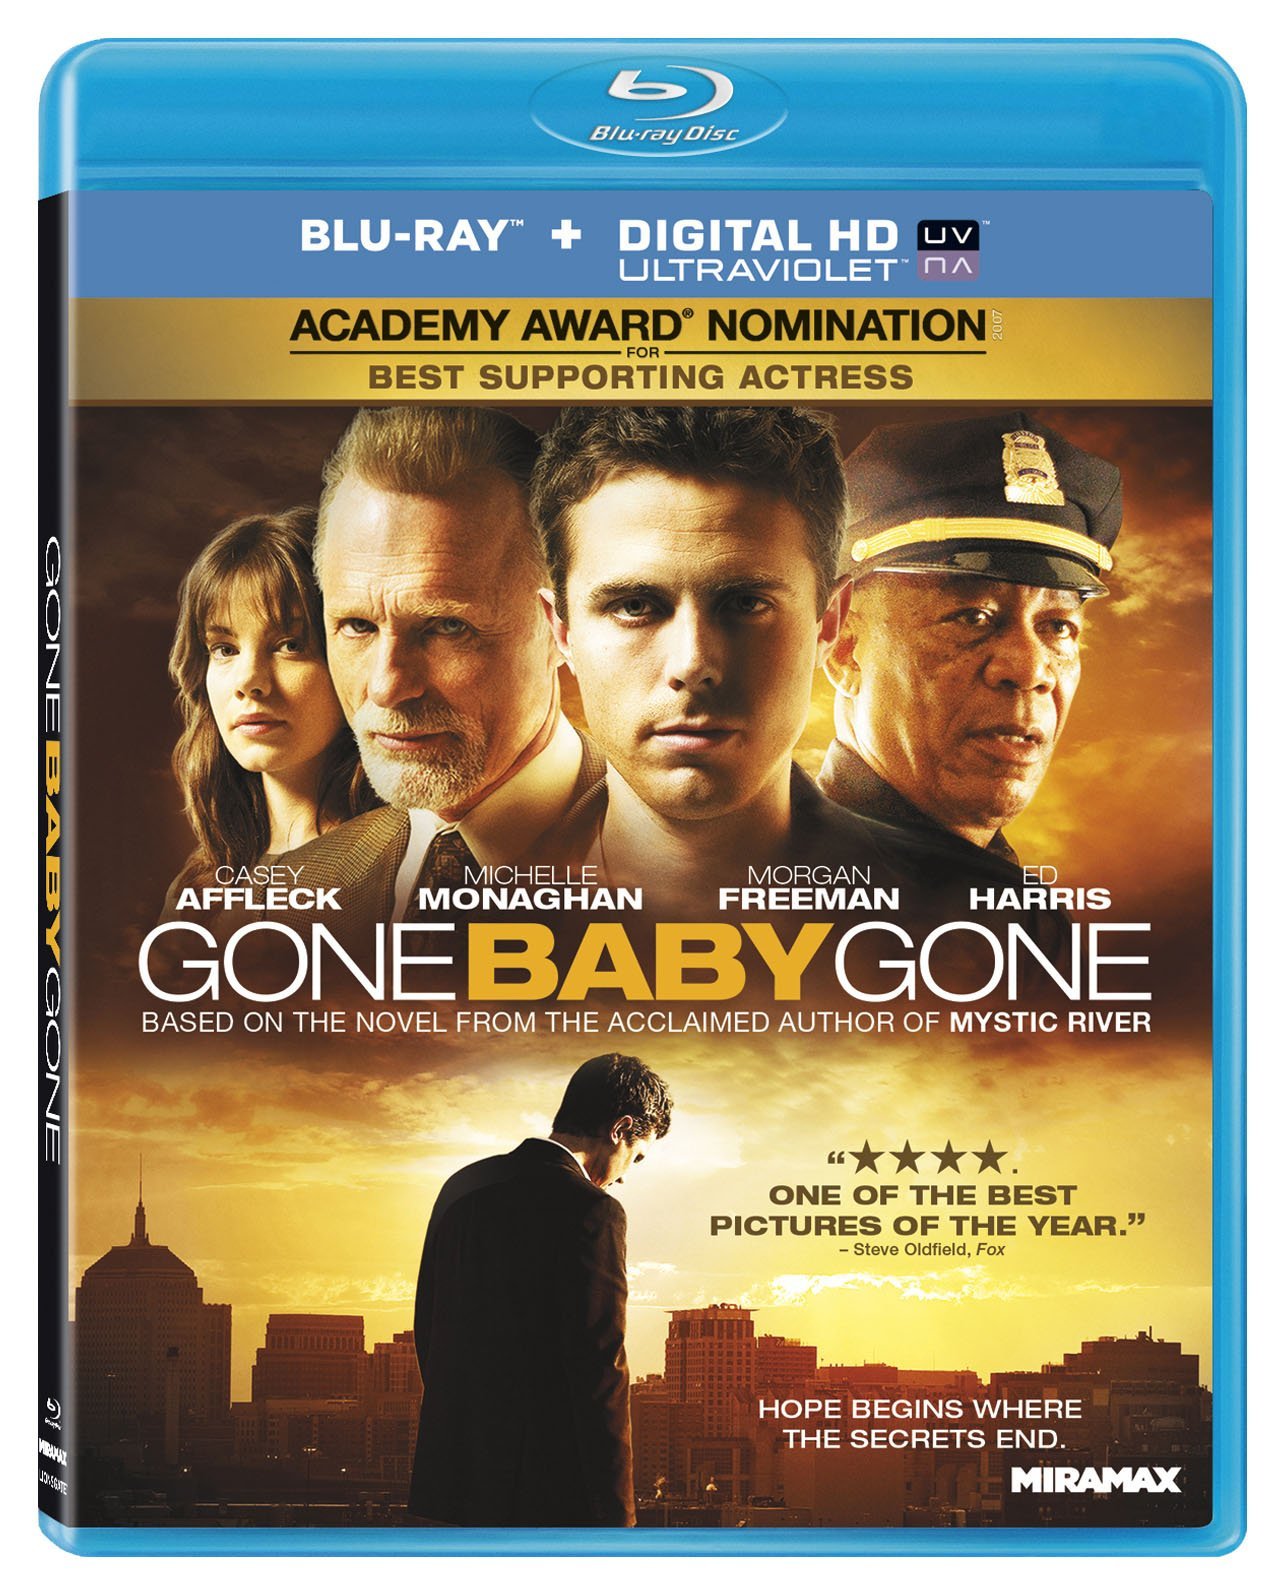 Blu-ray : Gone Baby Gone (Widescreen)